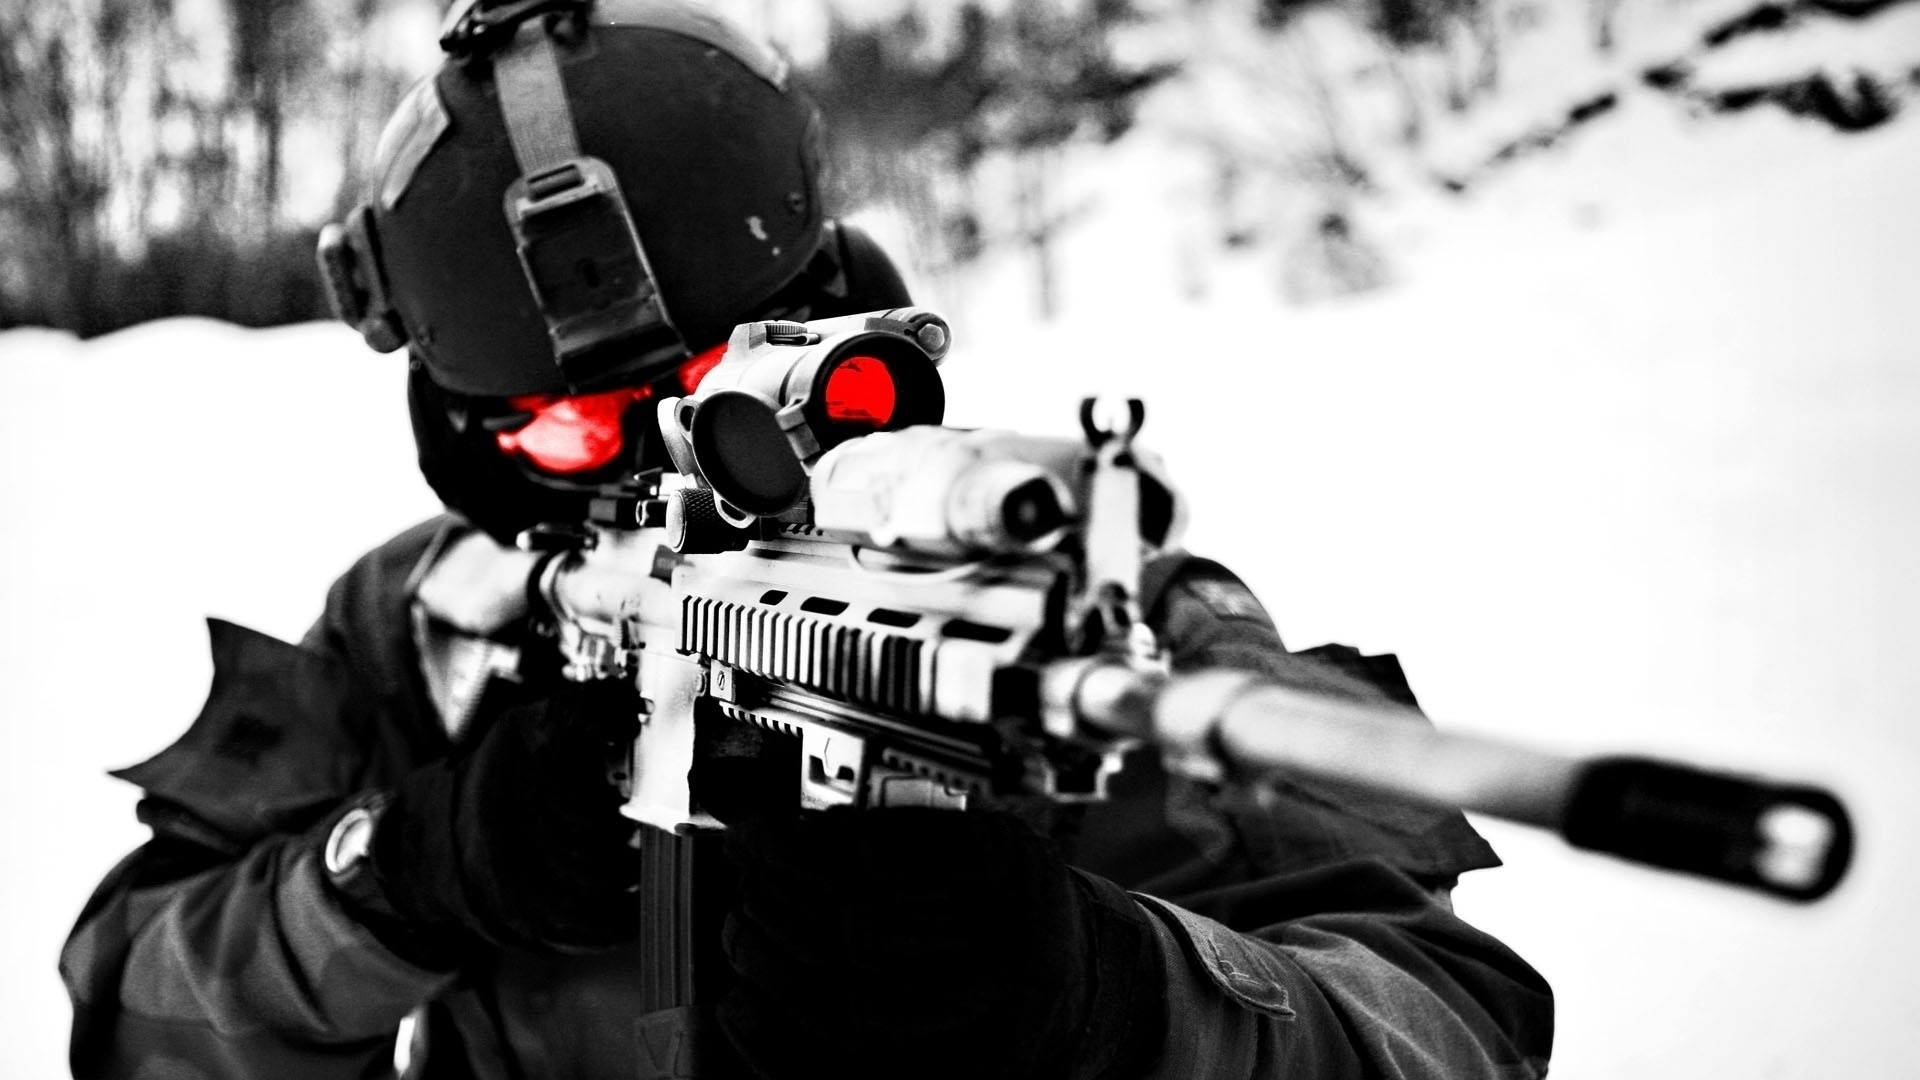 sniper close up wallpaper 15358 16030 hd wallpapers 1920x1080